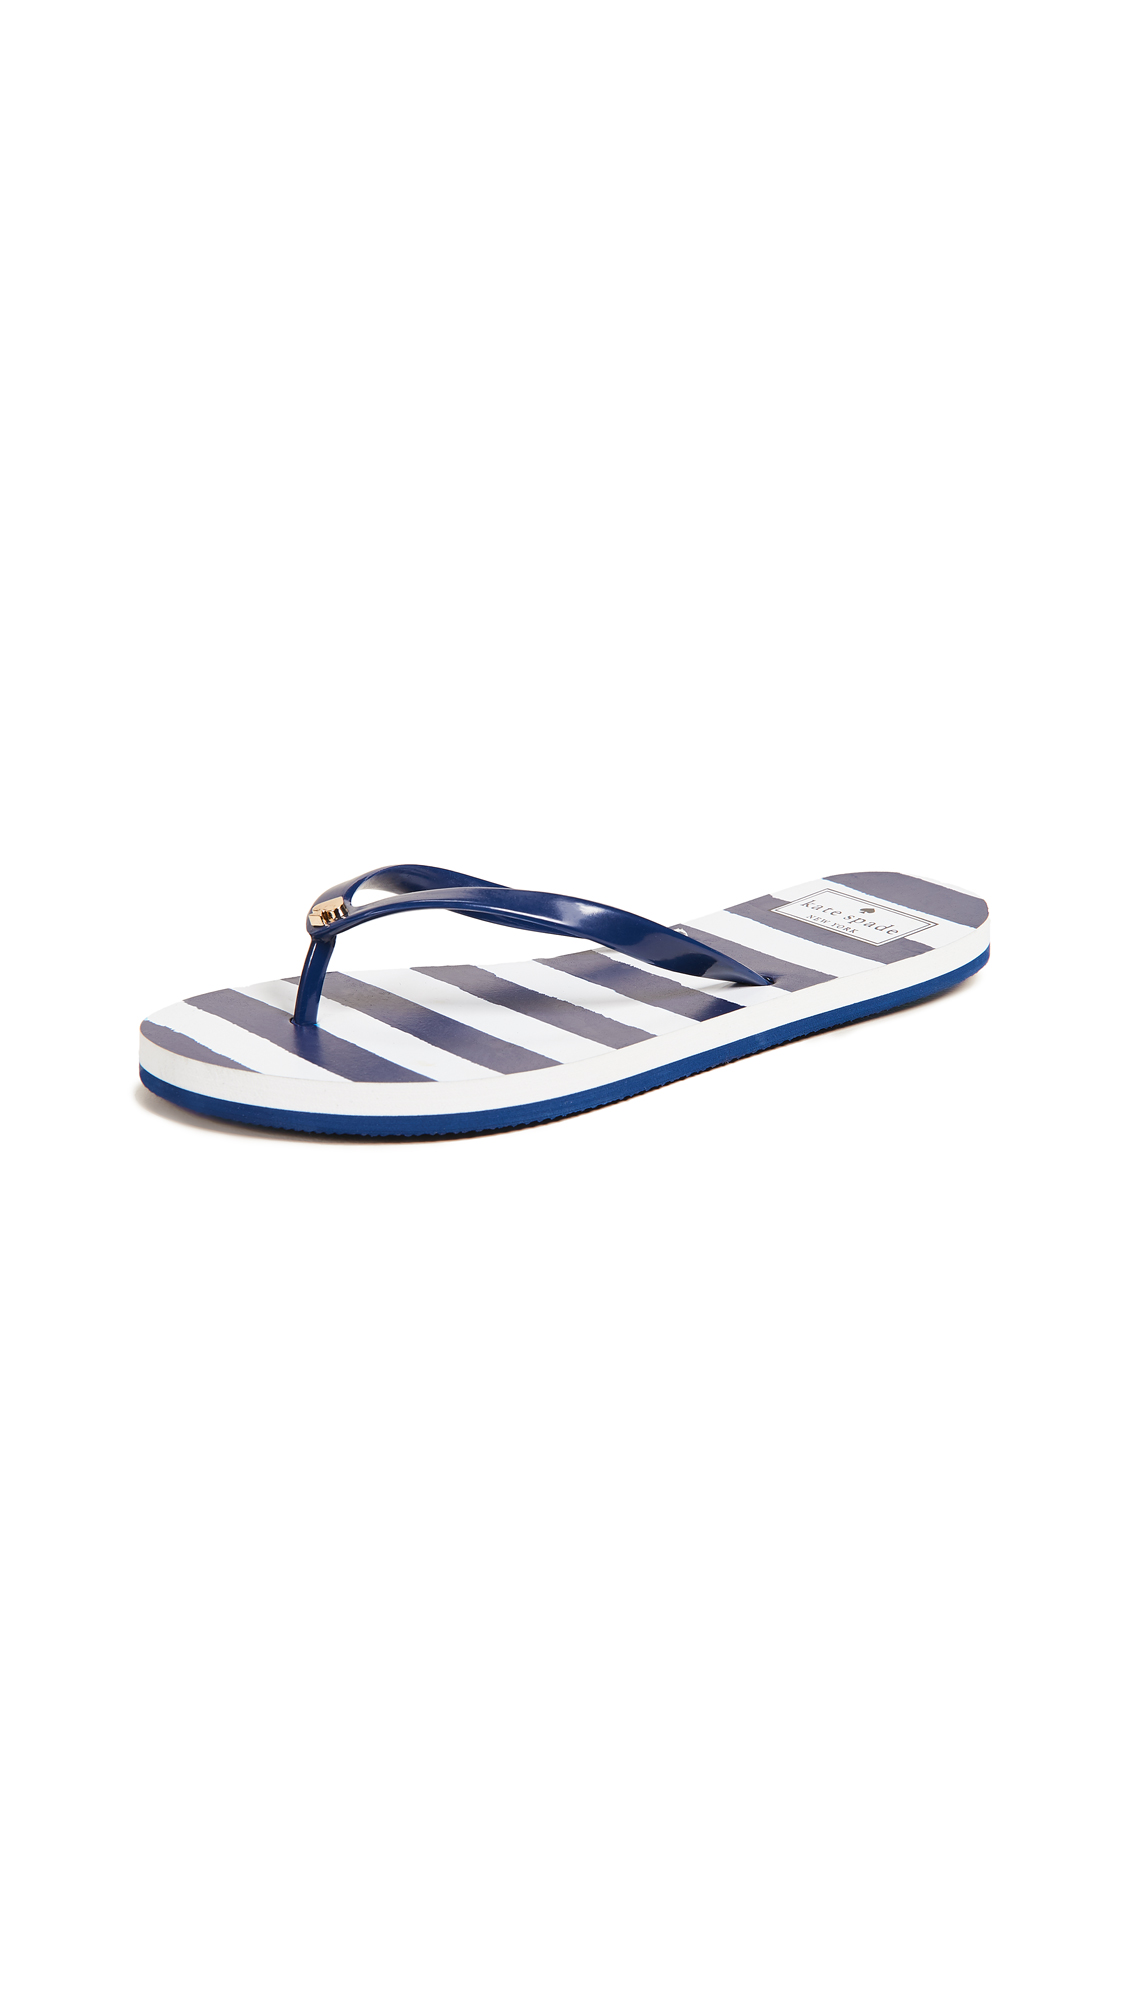 Kate Spade New York Nassau Flip Flops - Navy/White Stripe